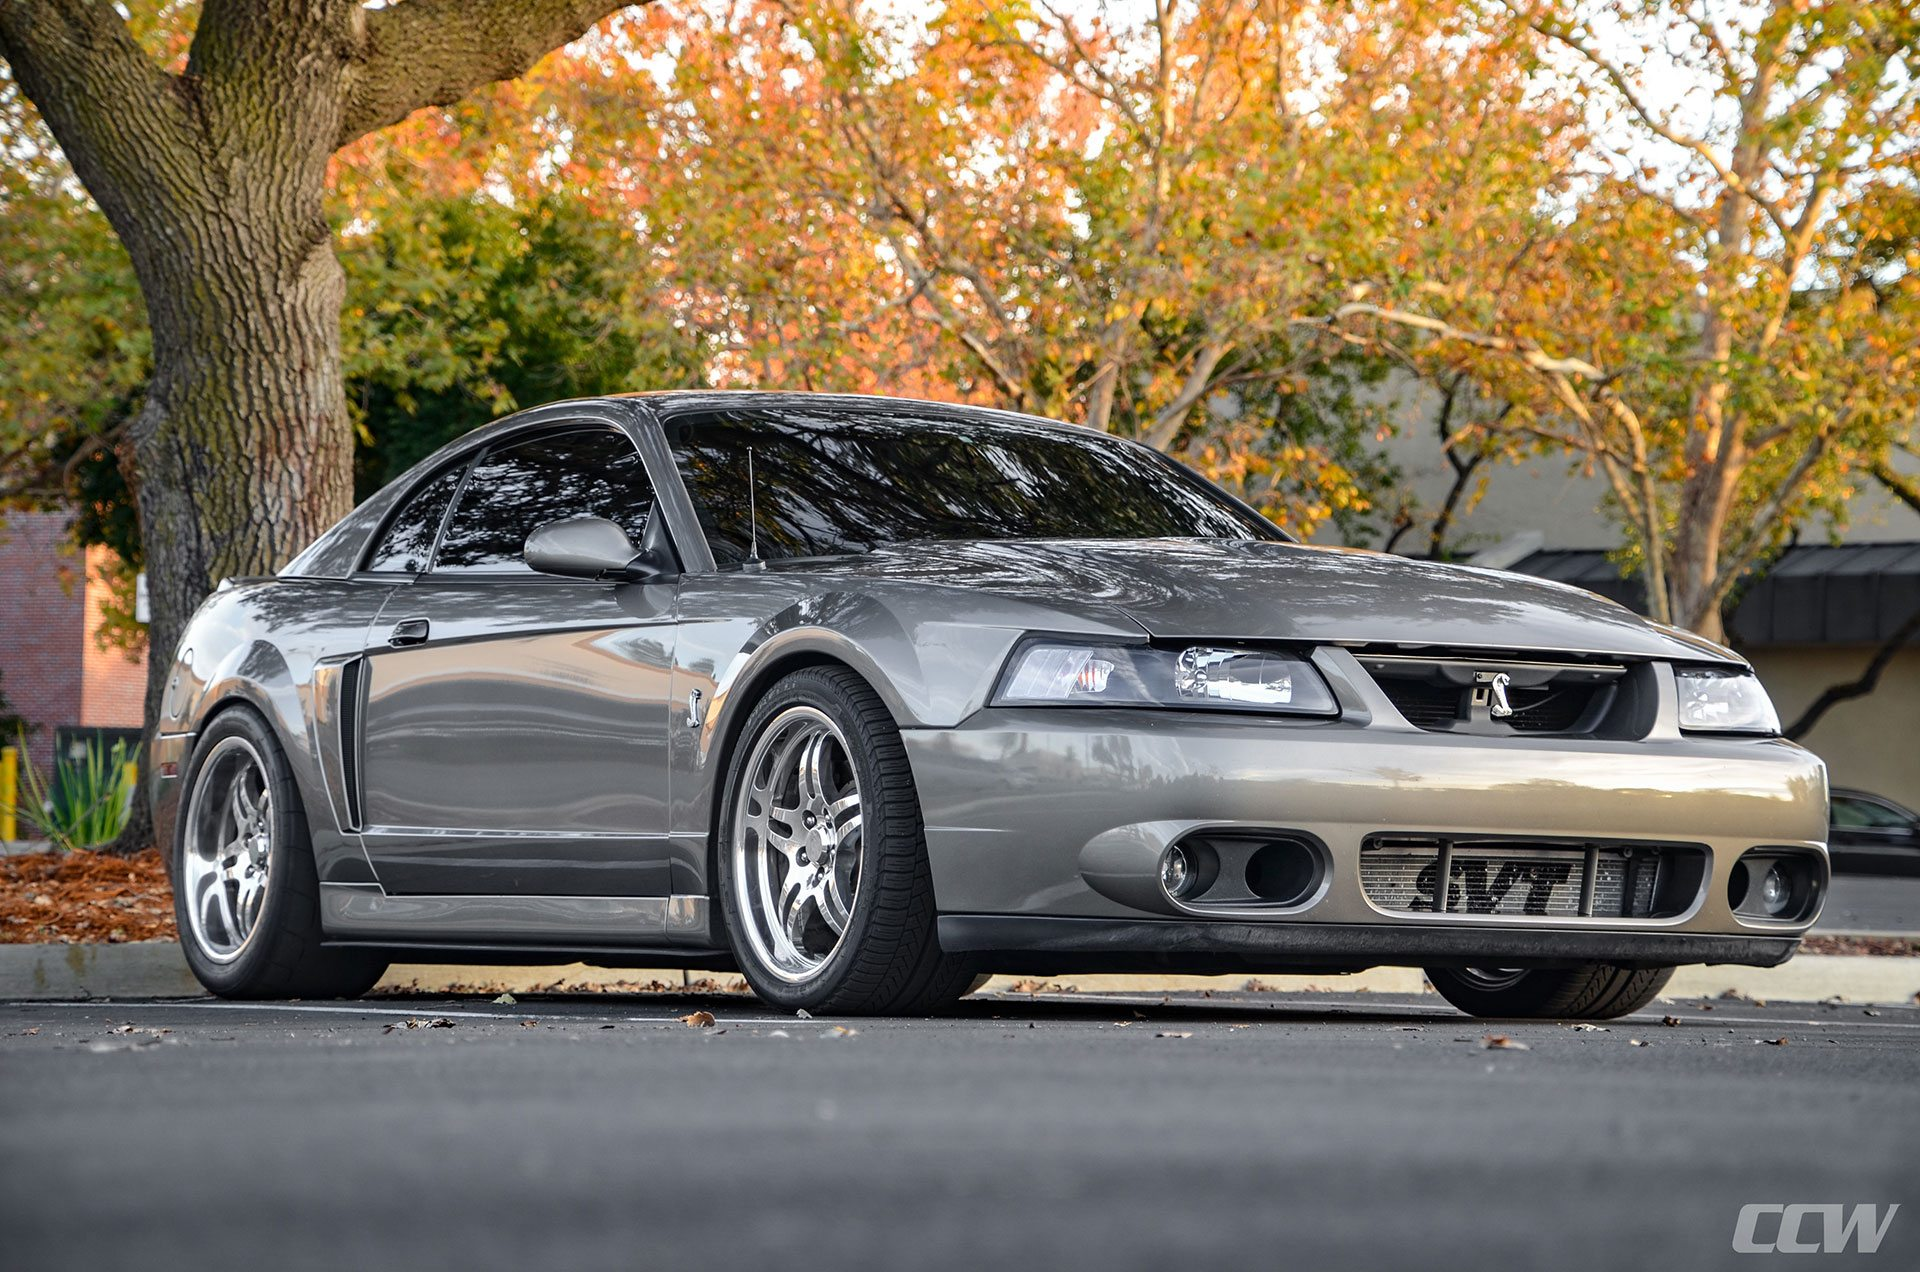 2003 ford mustang cobra terminator ccw sp505 forged wheels